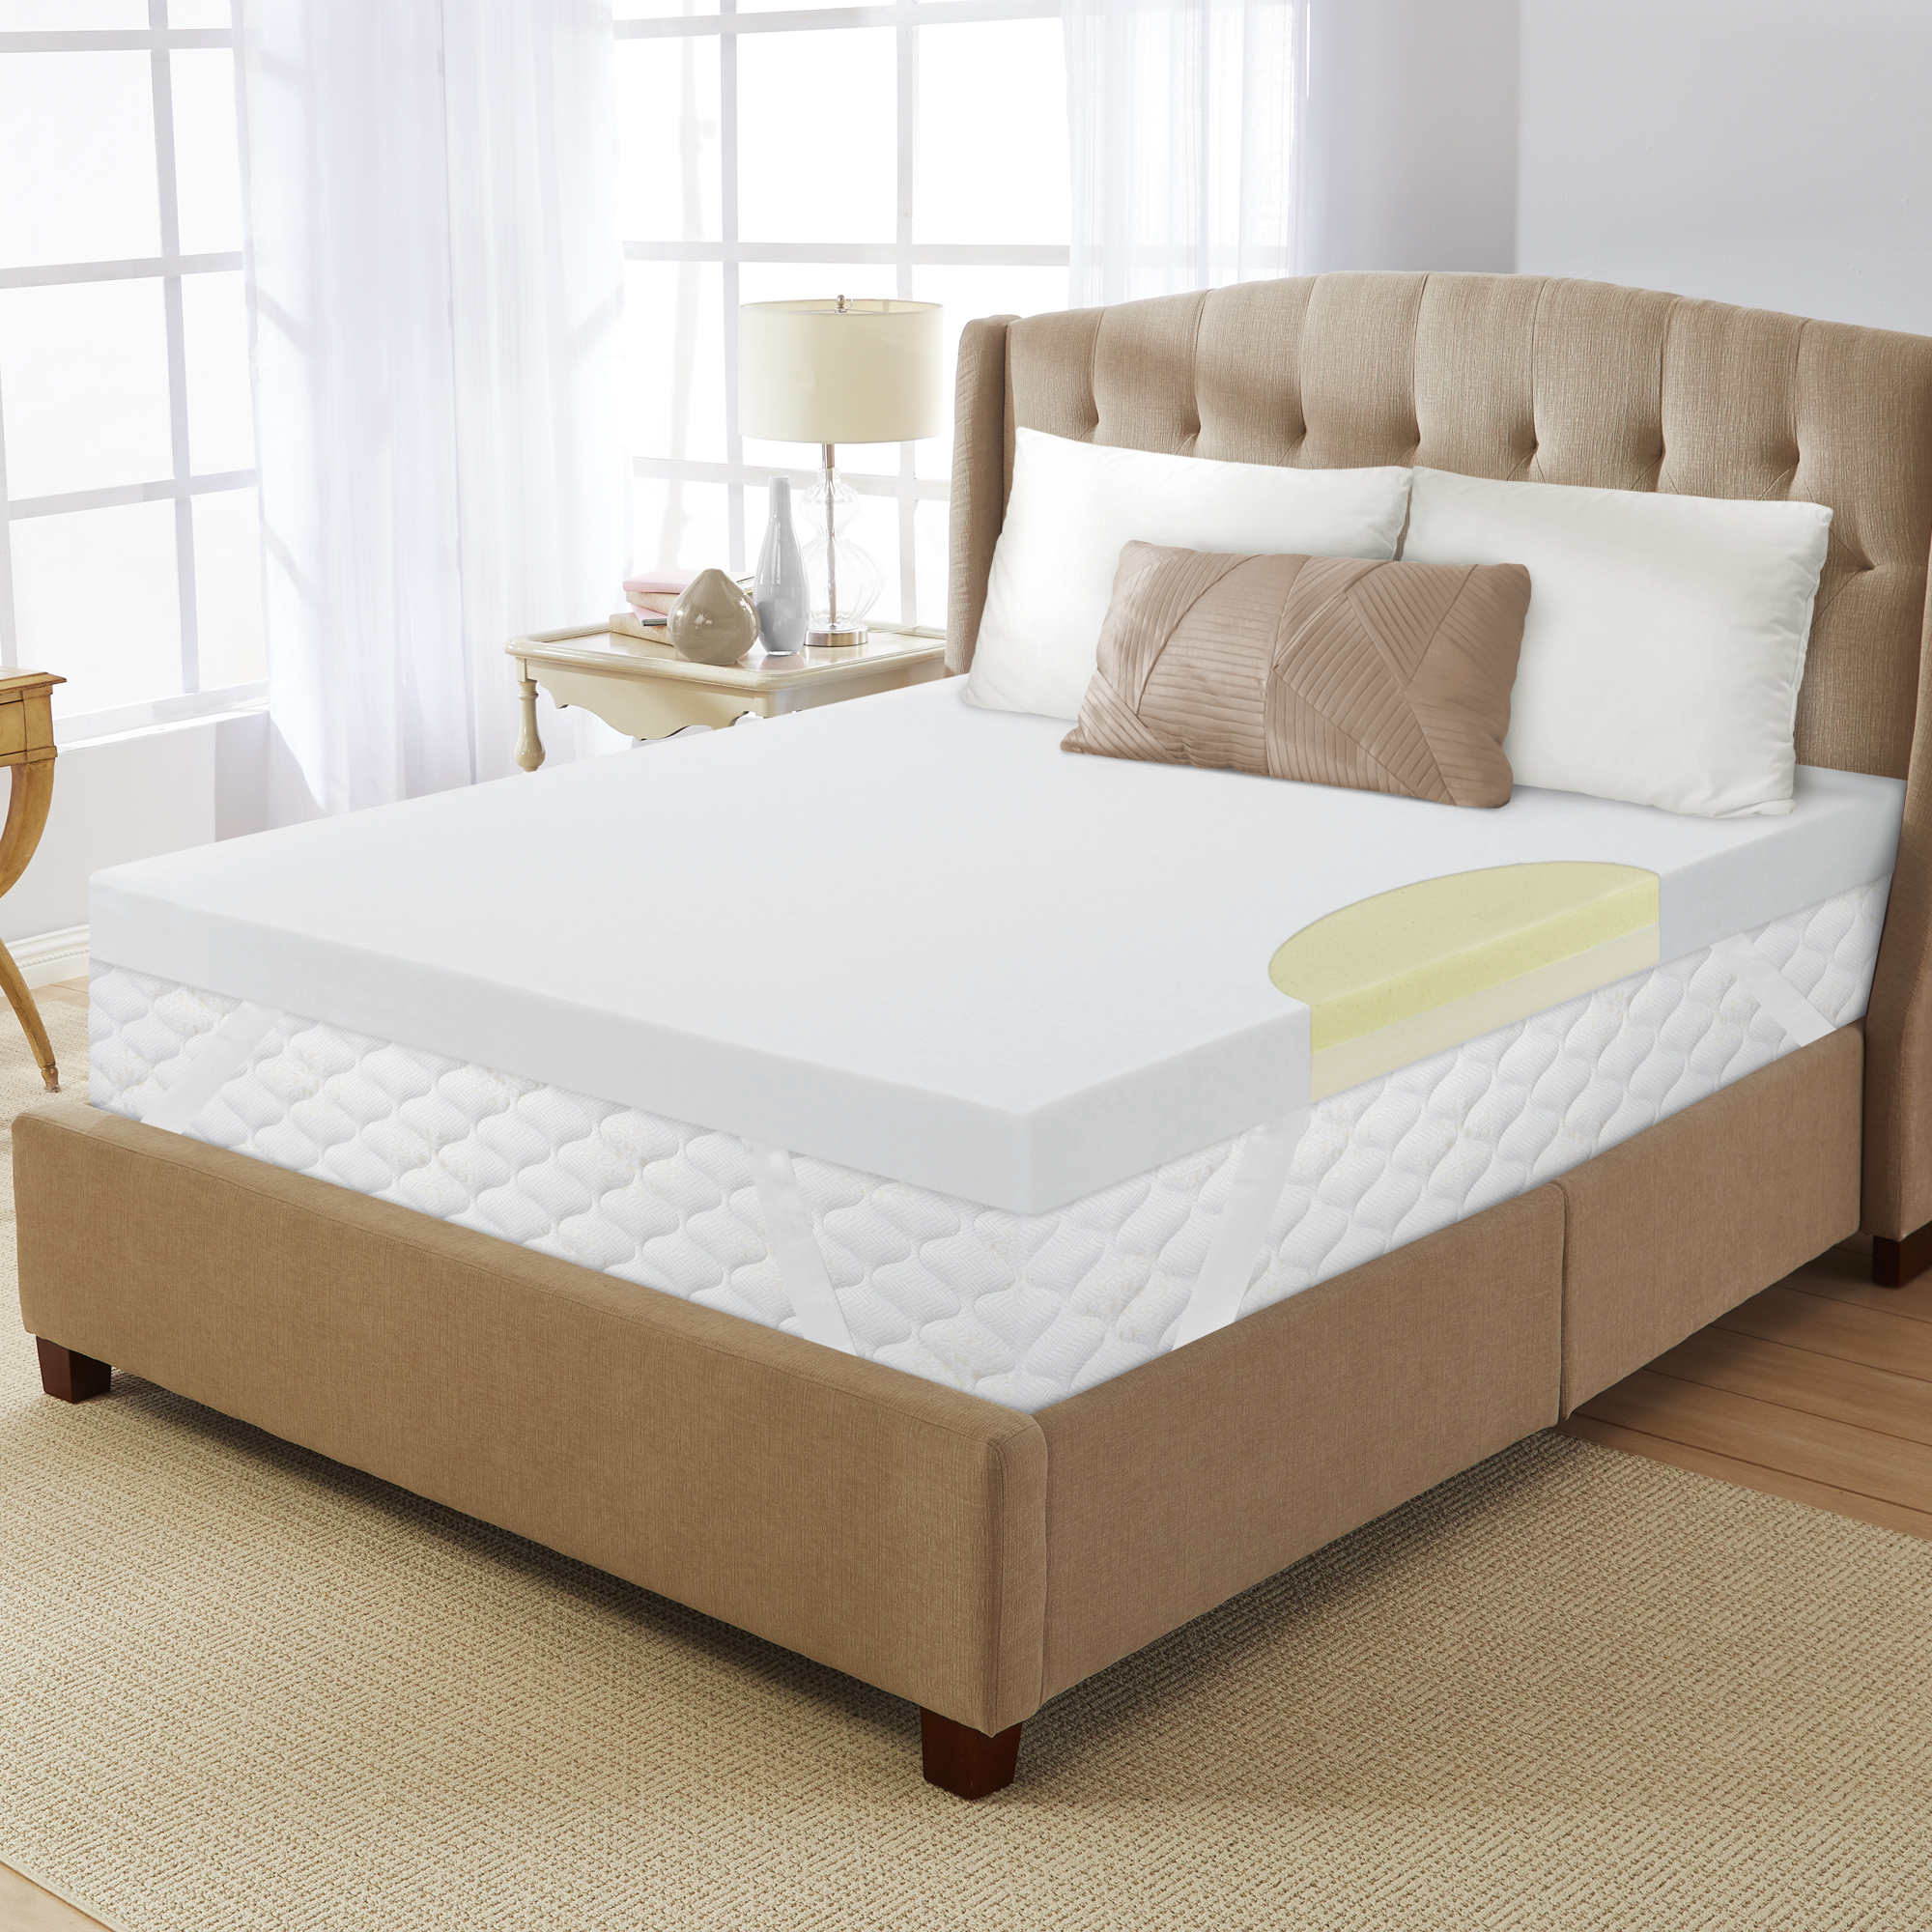 dream serenity 4 true support mattress topper walmart com